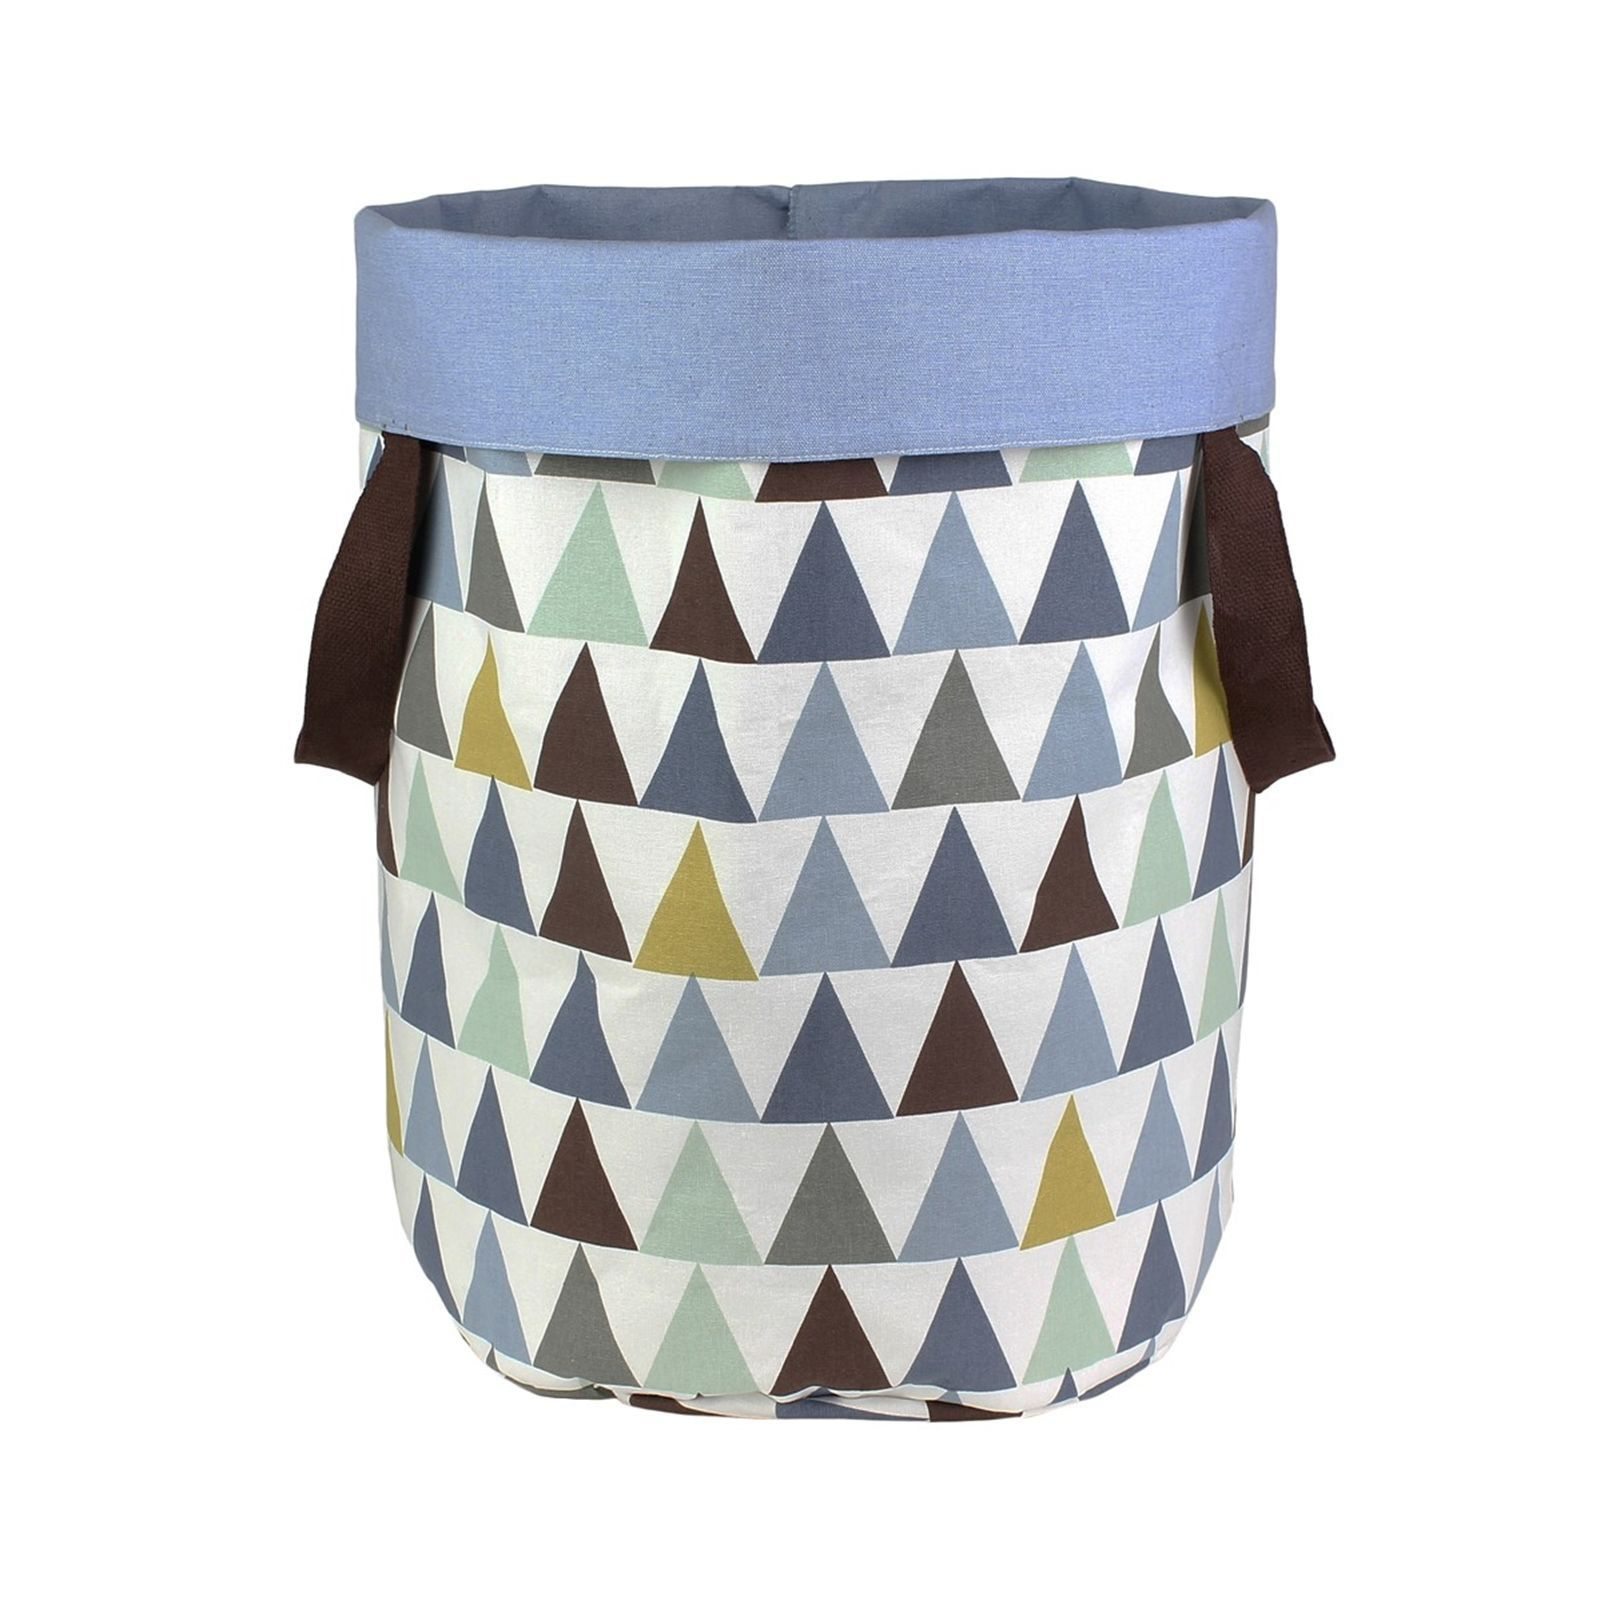 Art for kids grand panier de rangement multicolore brandalley - Grand panier de rangement ...